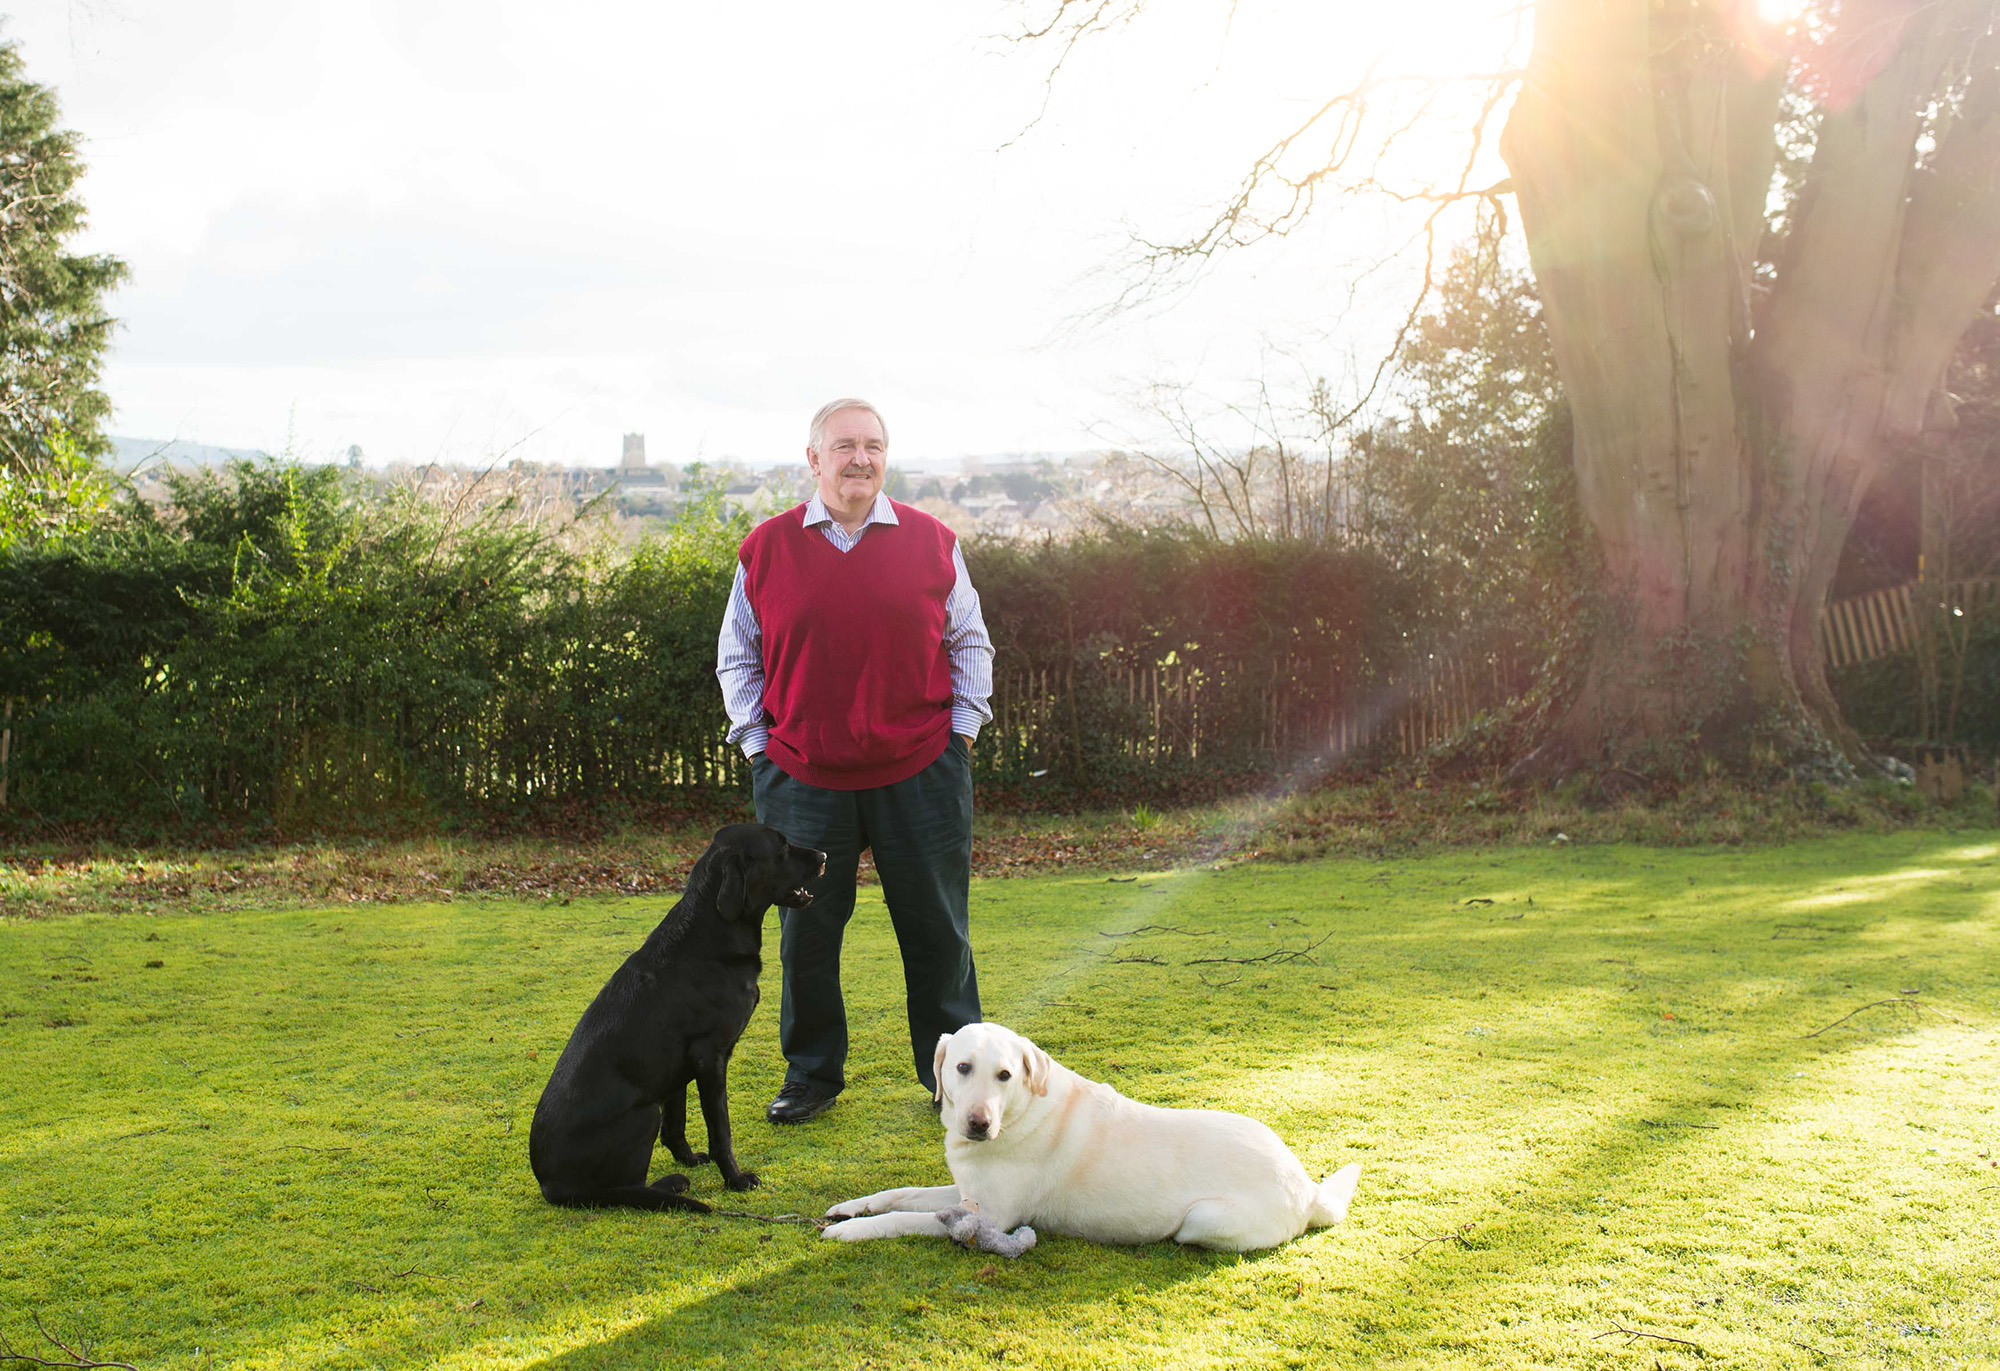 David Nutt pictured with his two dogs Sonny and Borris.